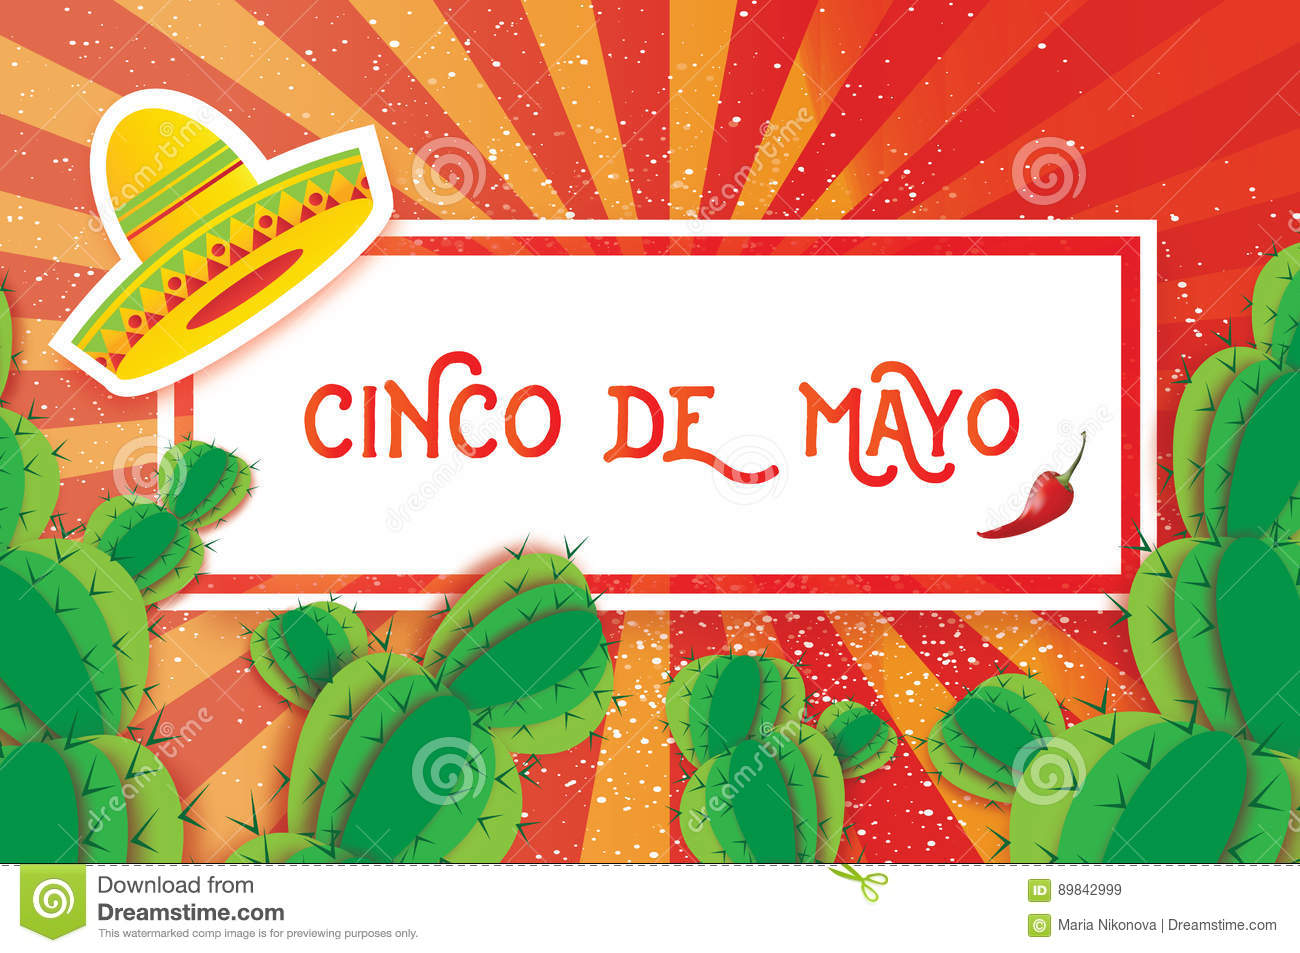 Happy cinco de mayo greeting card origami mexican sombrero hat download comp m4hsunfo